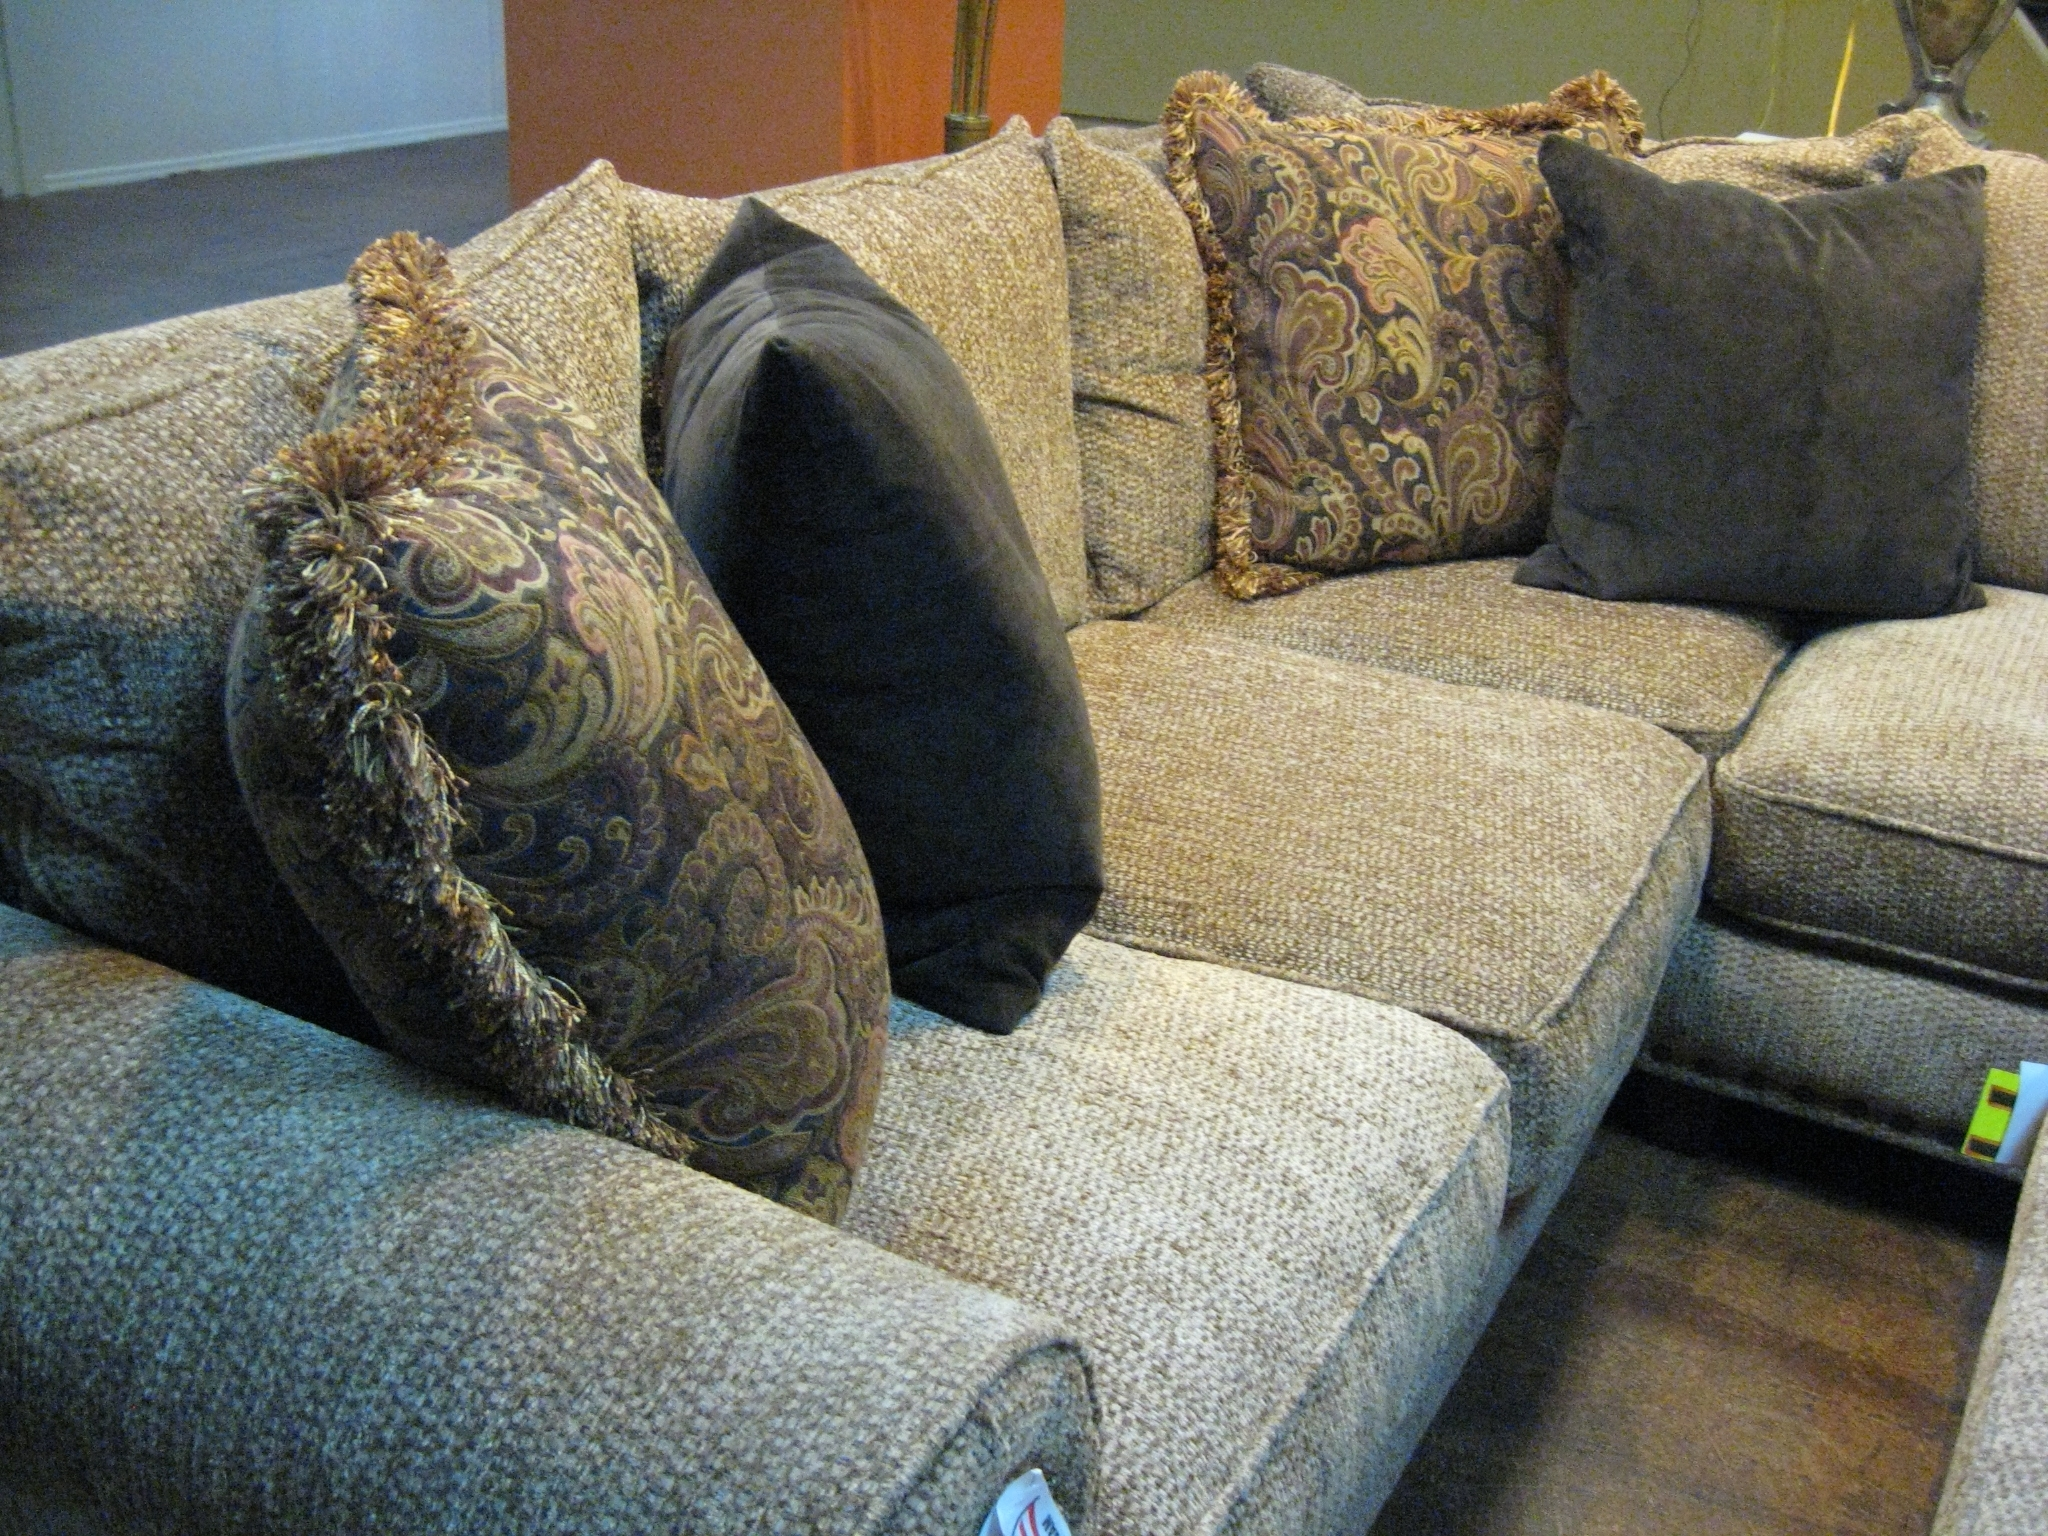 Most Up To Date Phoenix Arizona Sectional Sofas Inside Robert Michael Sectional Sofa Phoenix Arizona Discount Outlet (View 4 of 20)